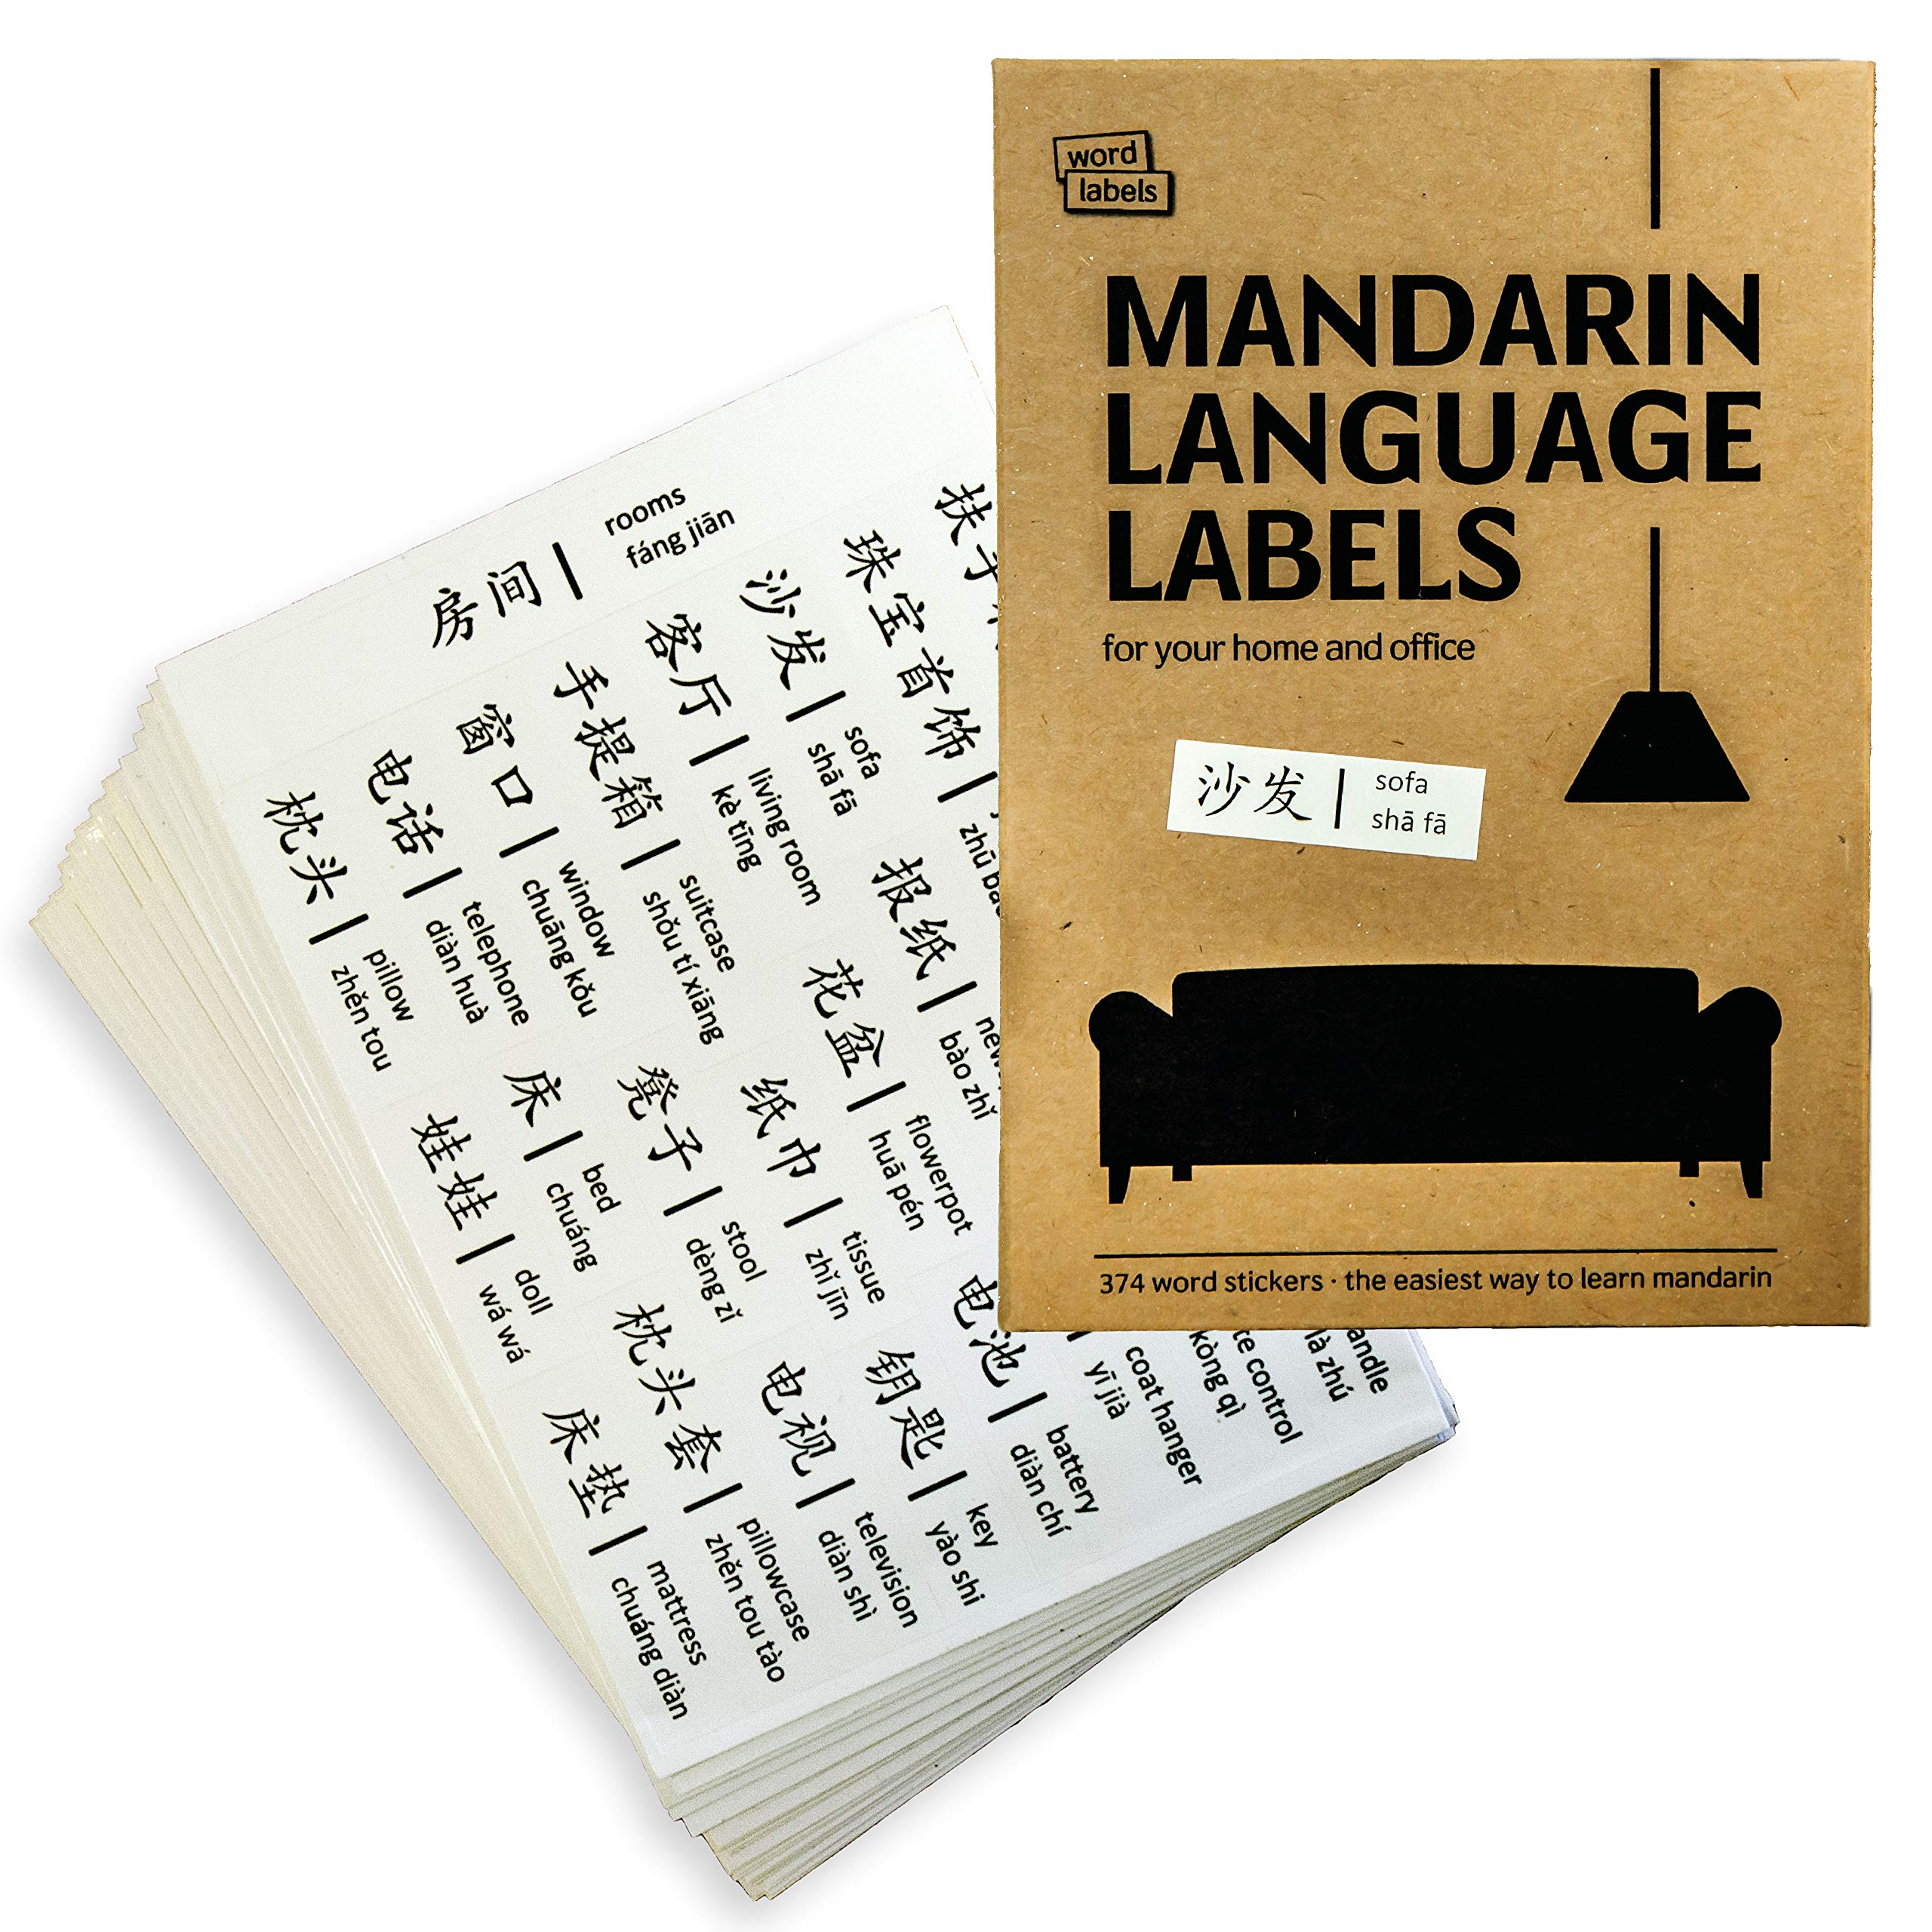 Mandarin Word Labels. Learn Chinese with 374 Simplified Mandarin/Pinyin/English Language and Vocabulary Stickers for Everyday Items in Your Home and Office. by Word Labels